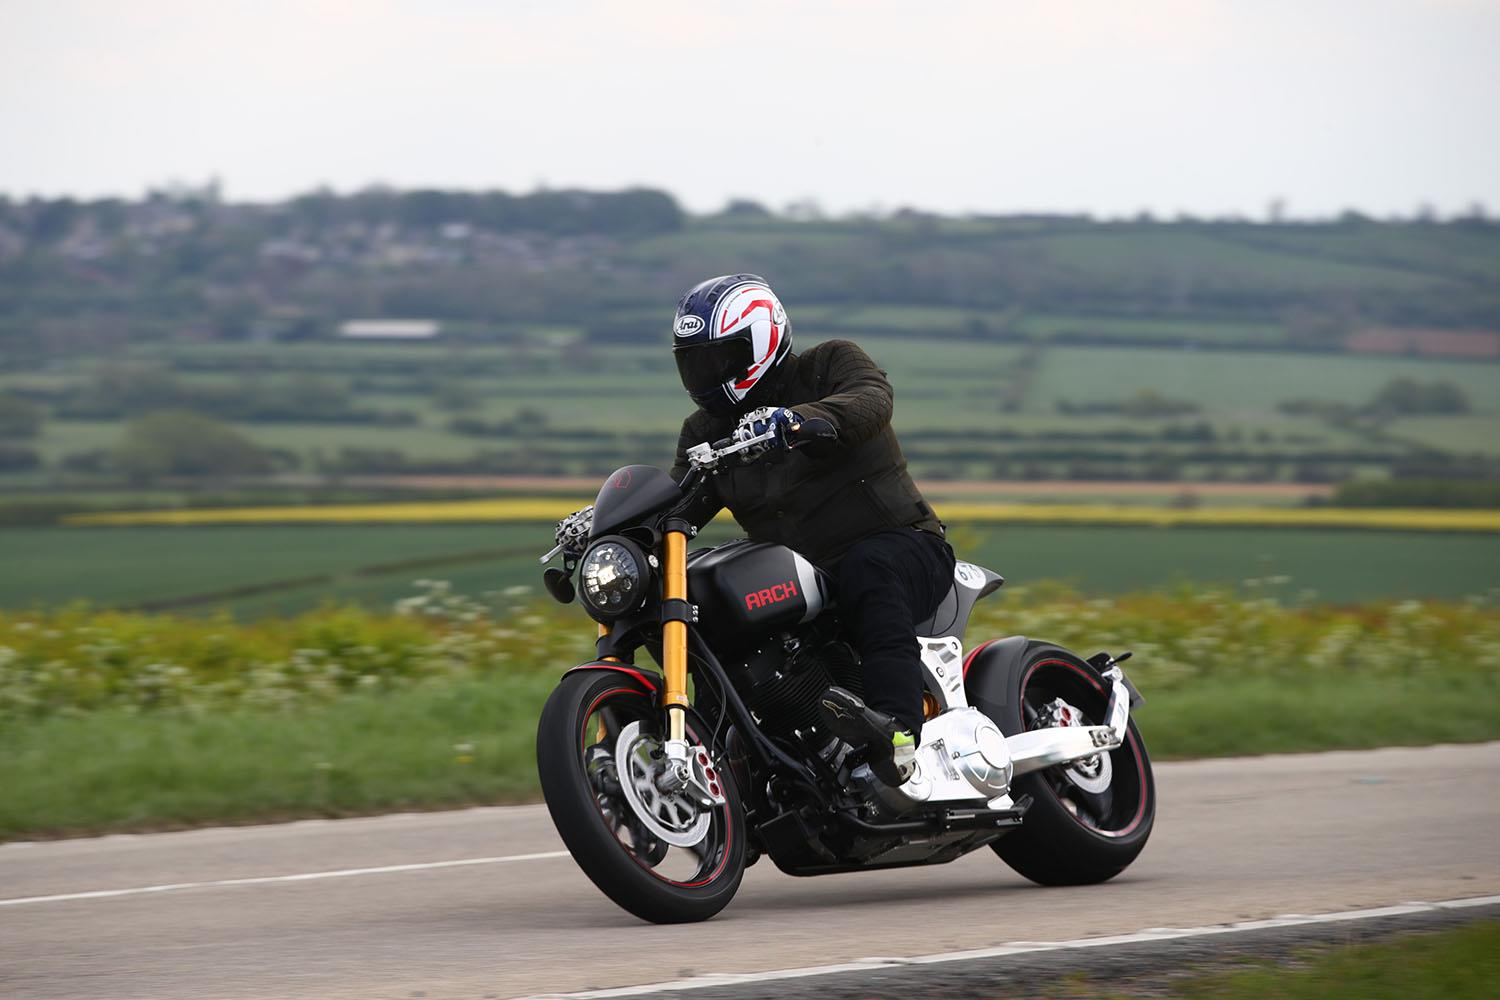 Arch KRGT-1 turning right